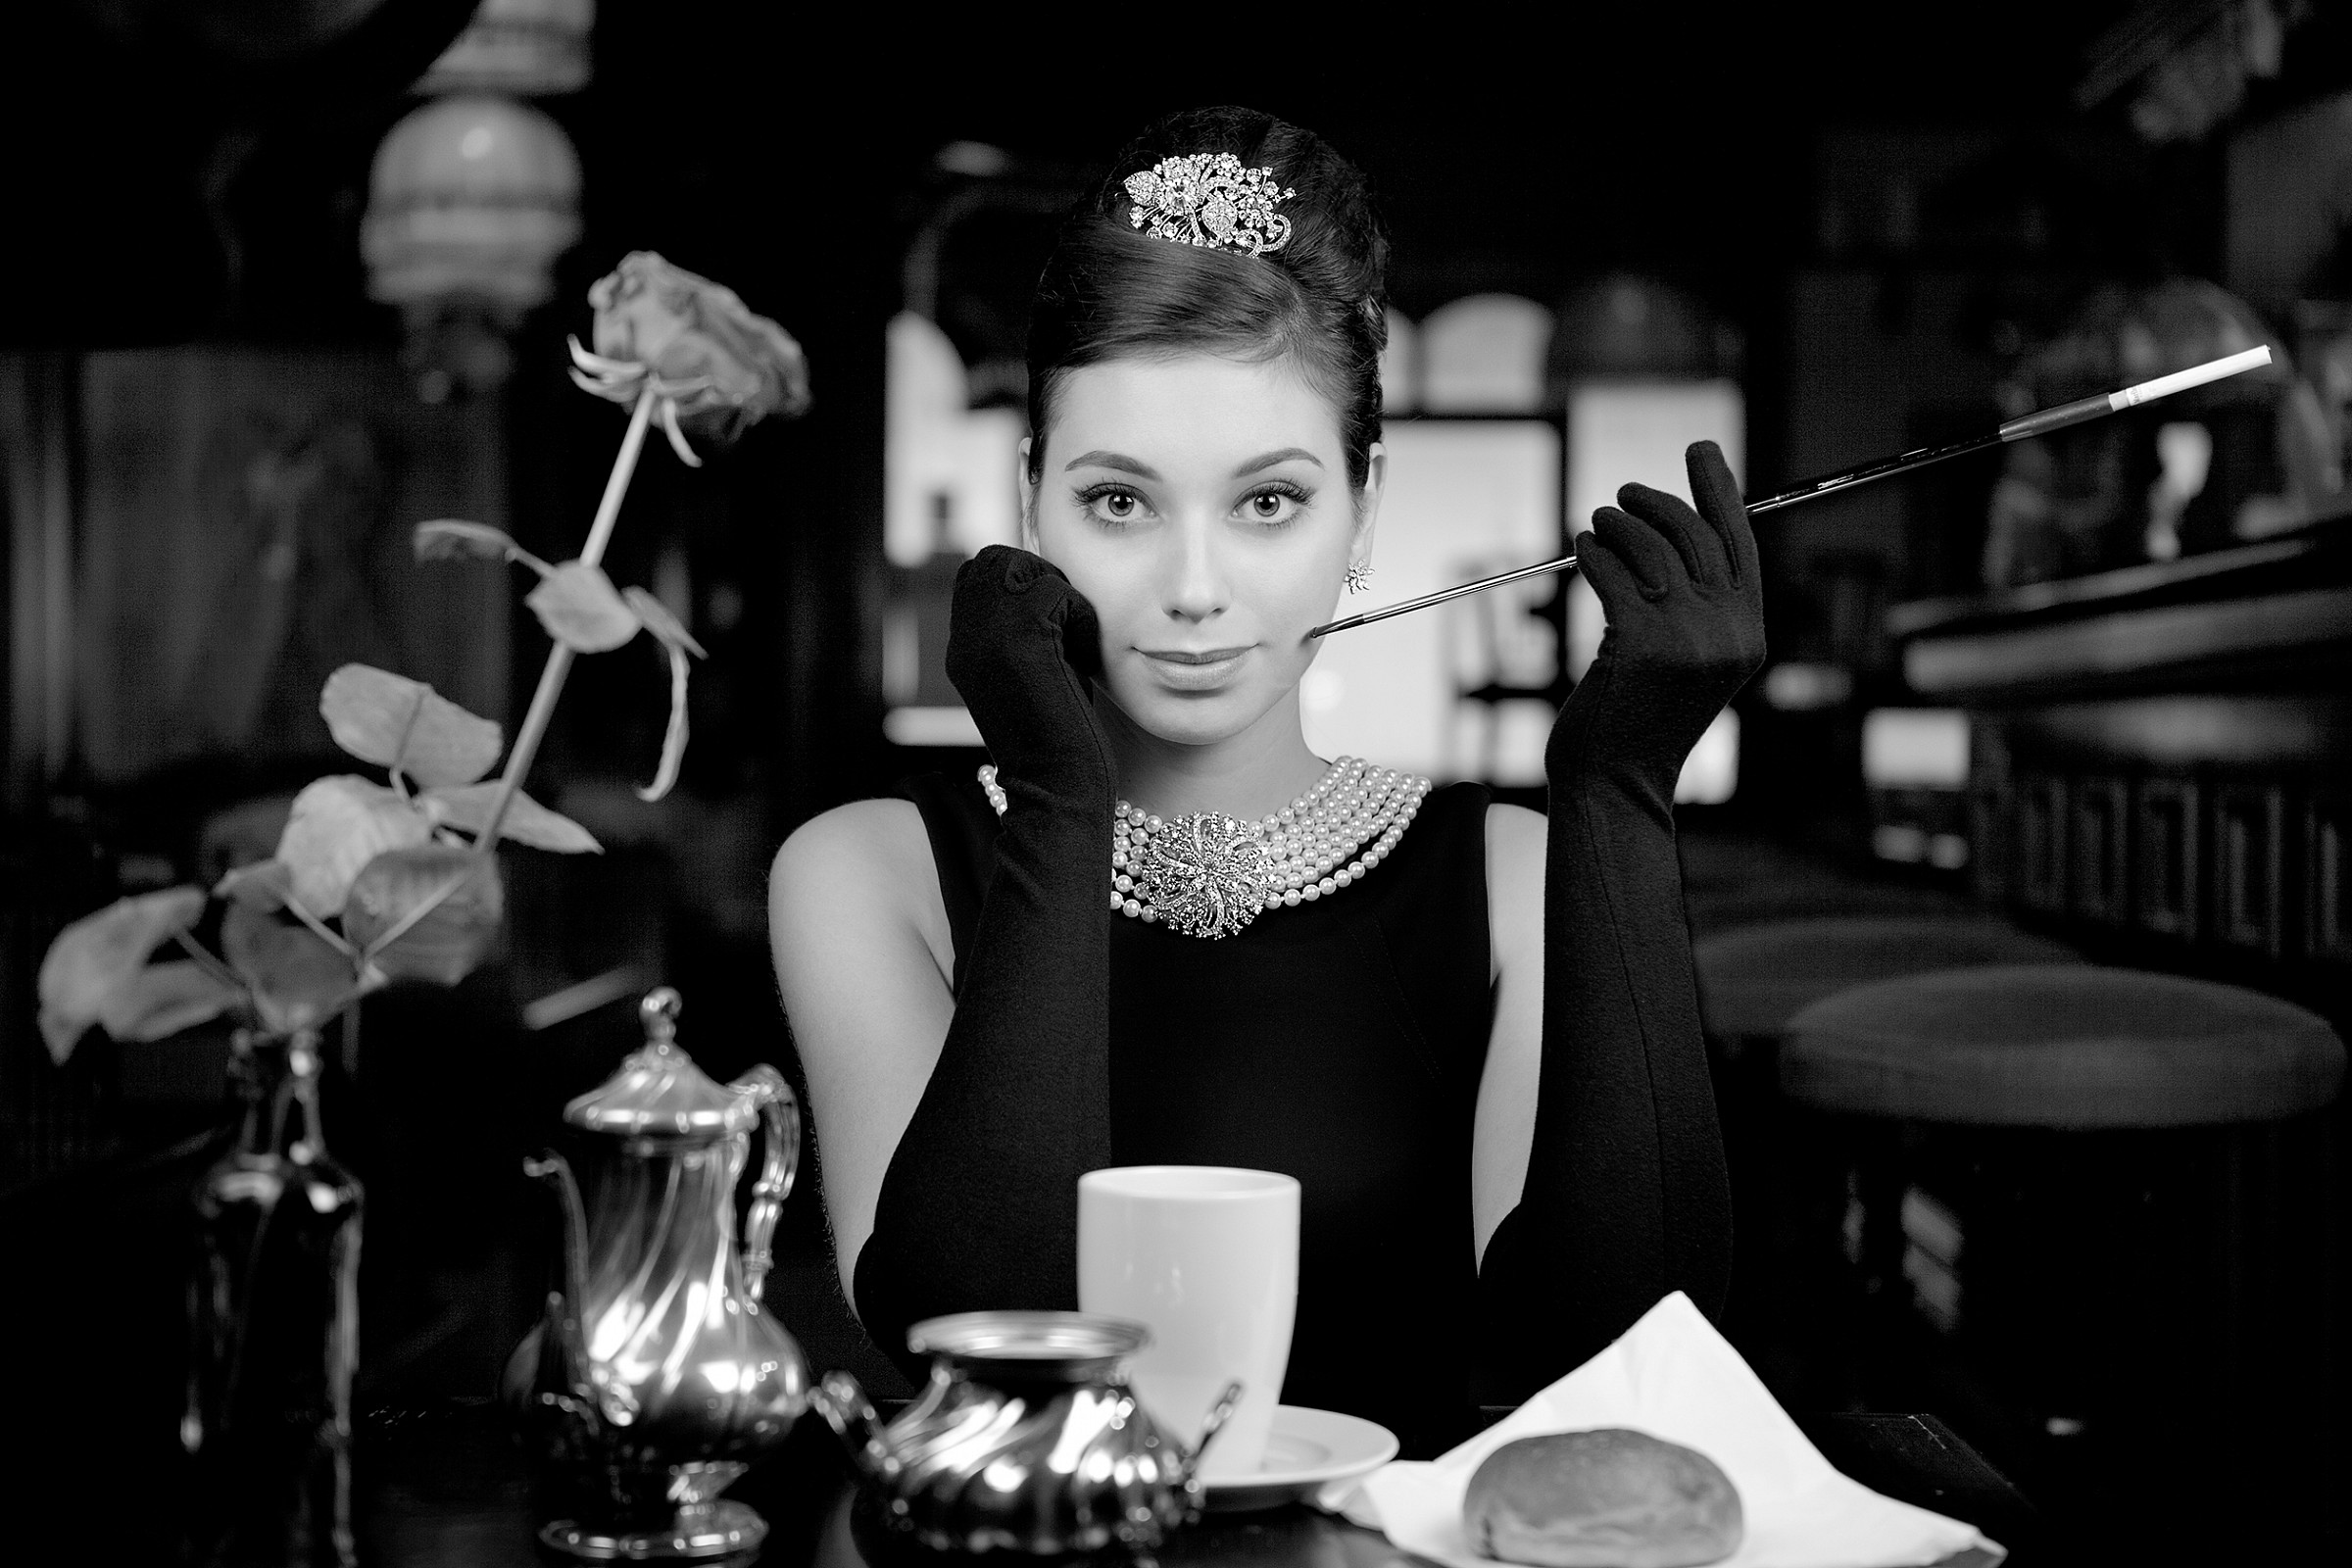 Breakfast with Audrey...